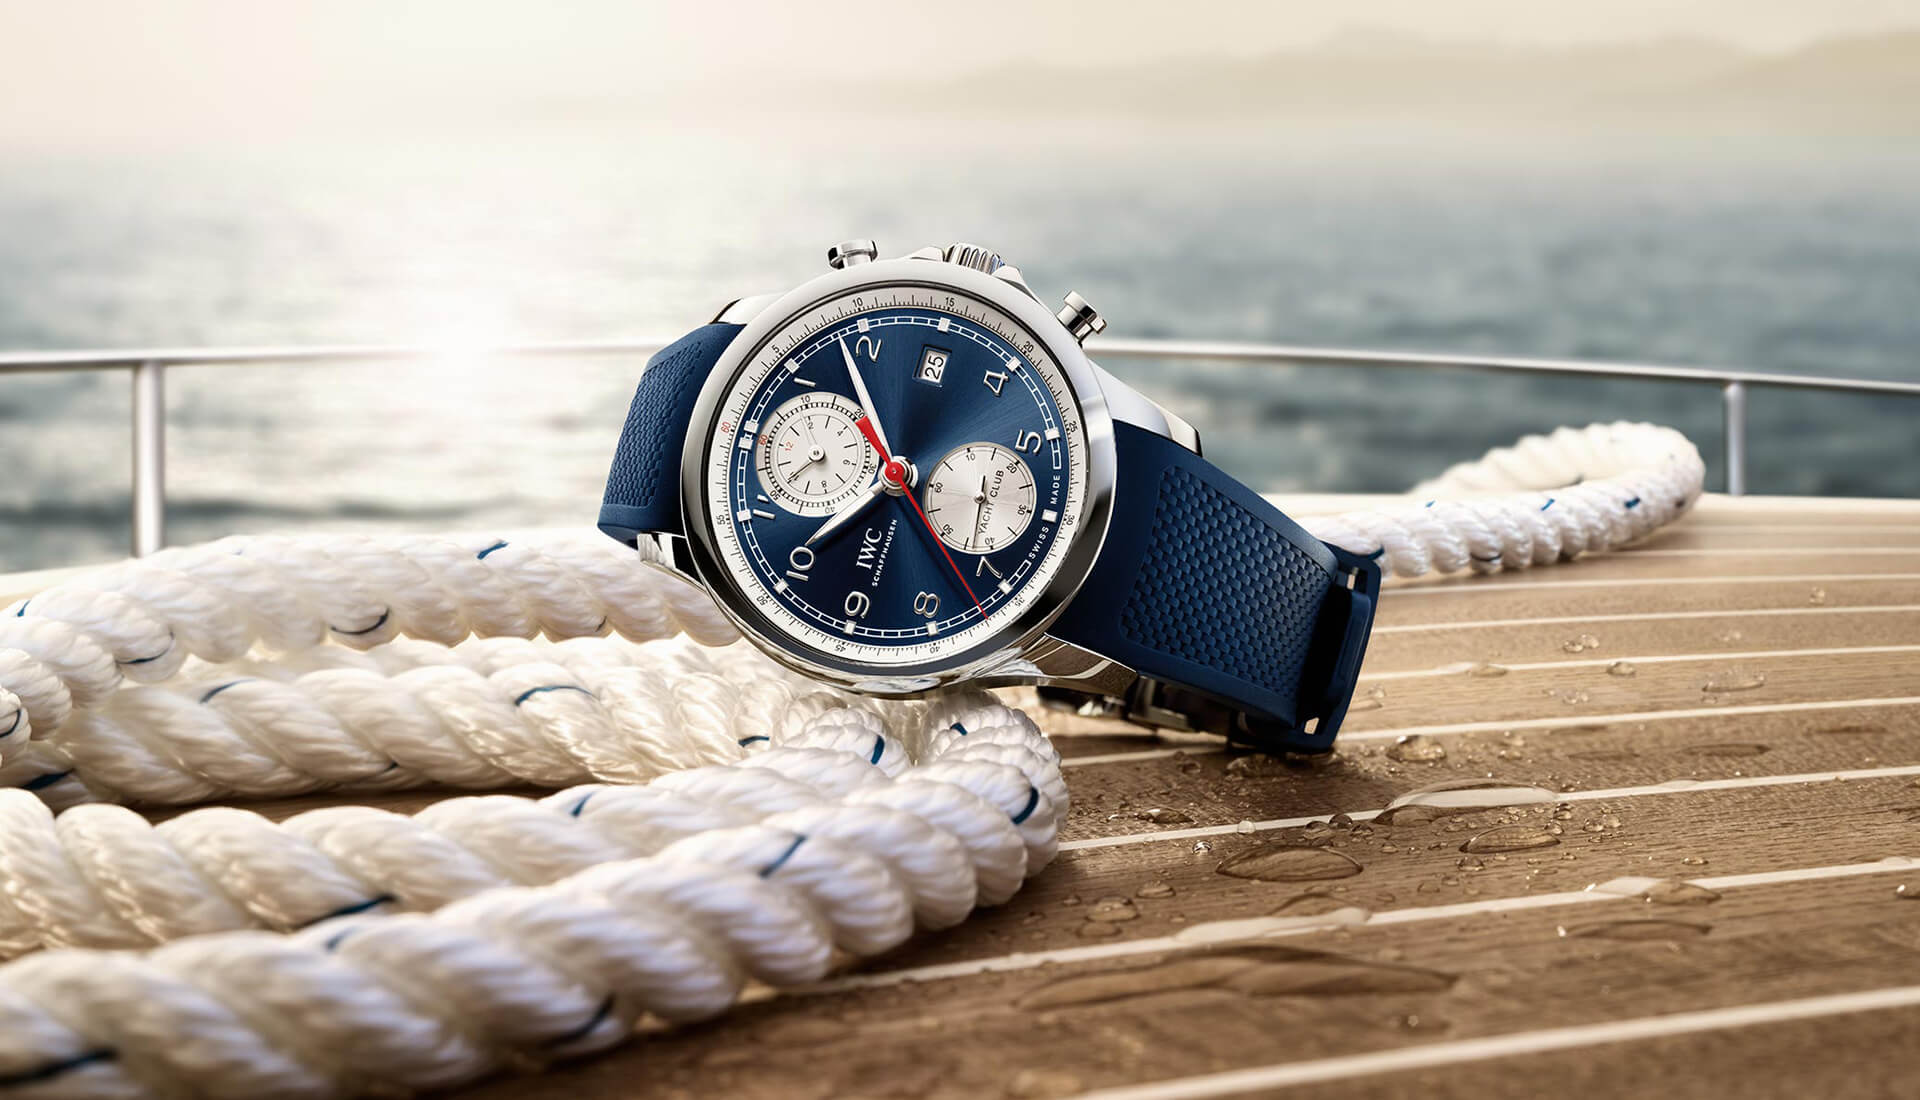 From The Press: IWC Owns The Summer With This New Portugieser Yacht Club Chrono